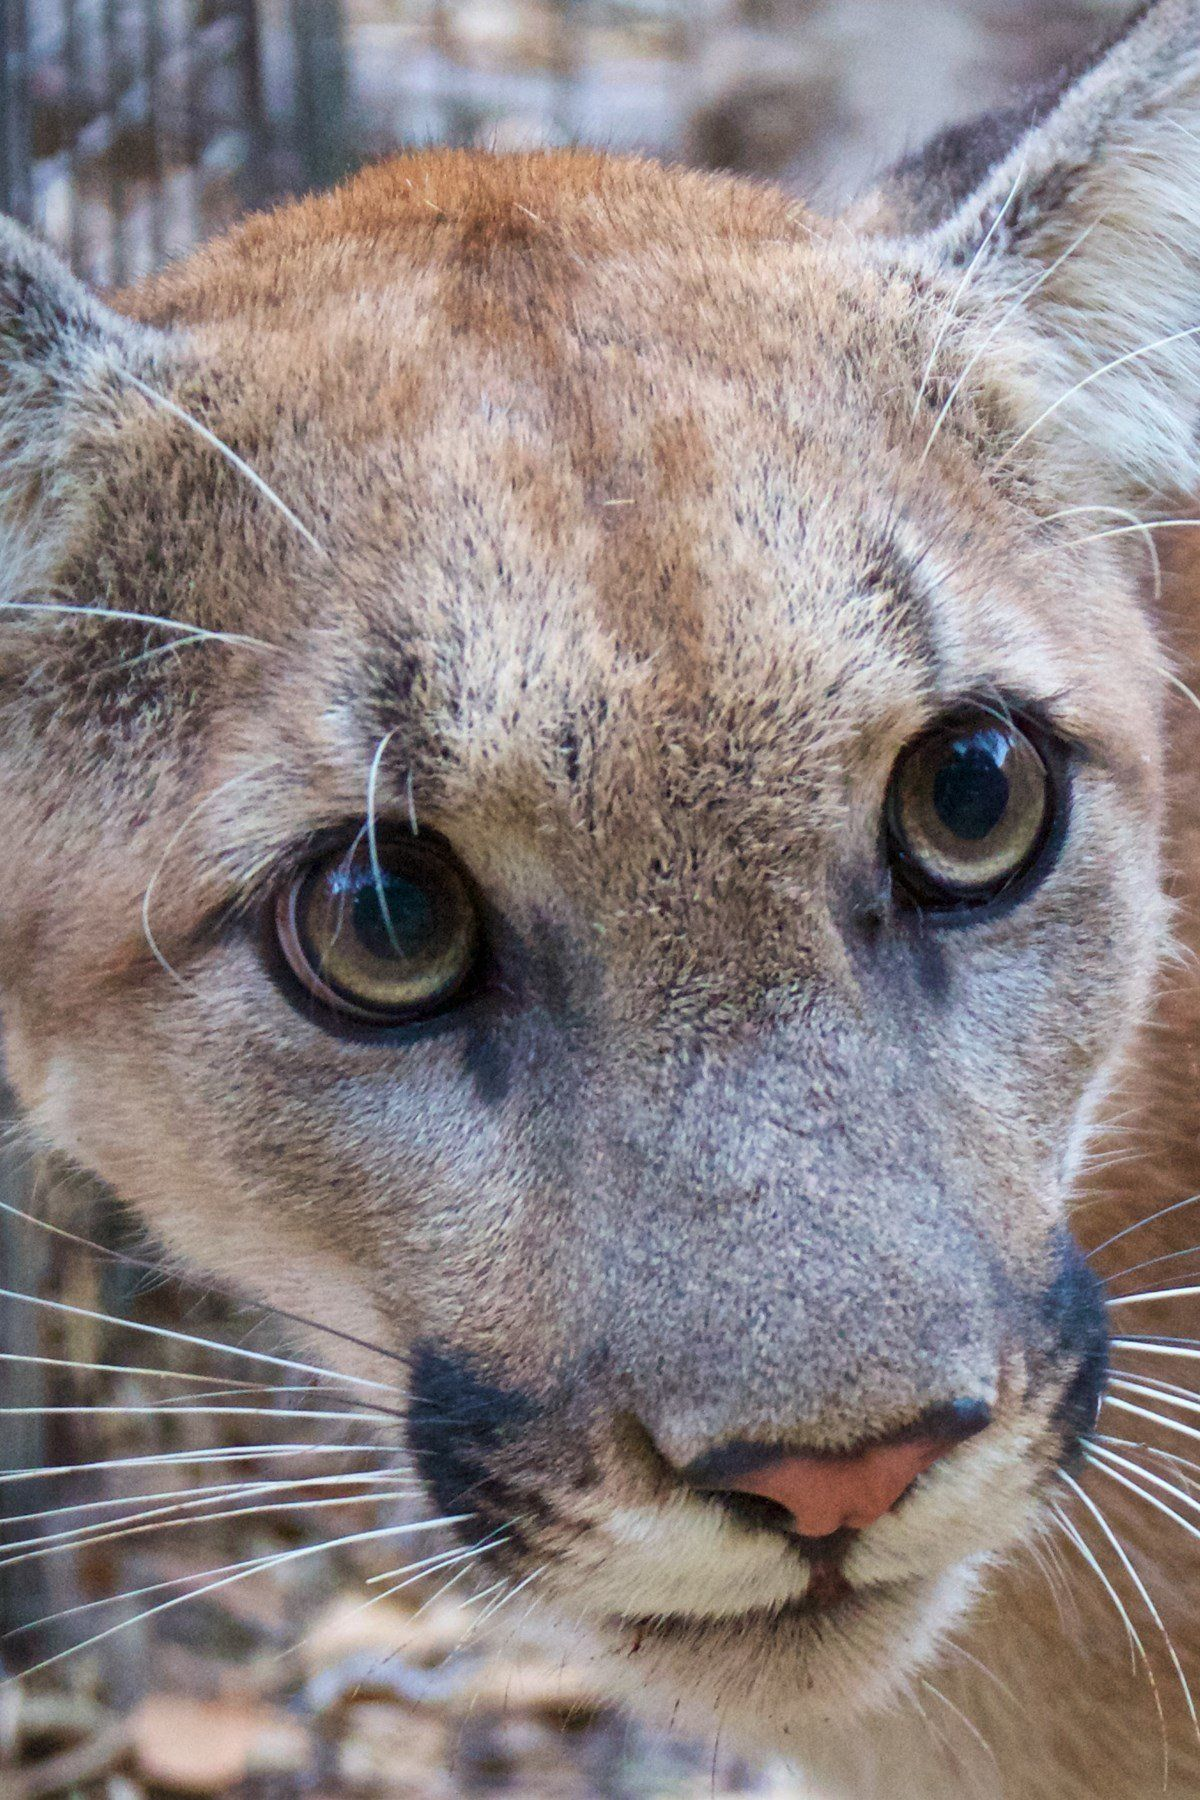 Mountain lion P-74 likely killed in California fire